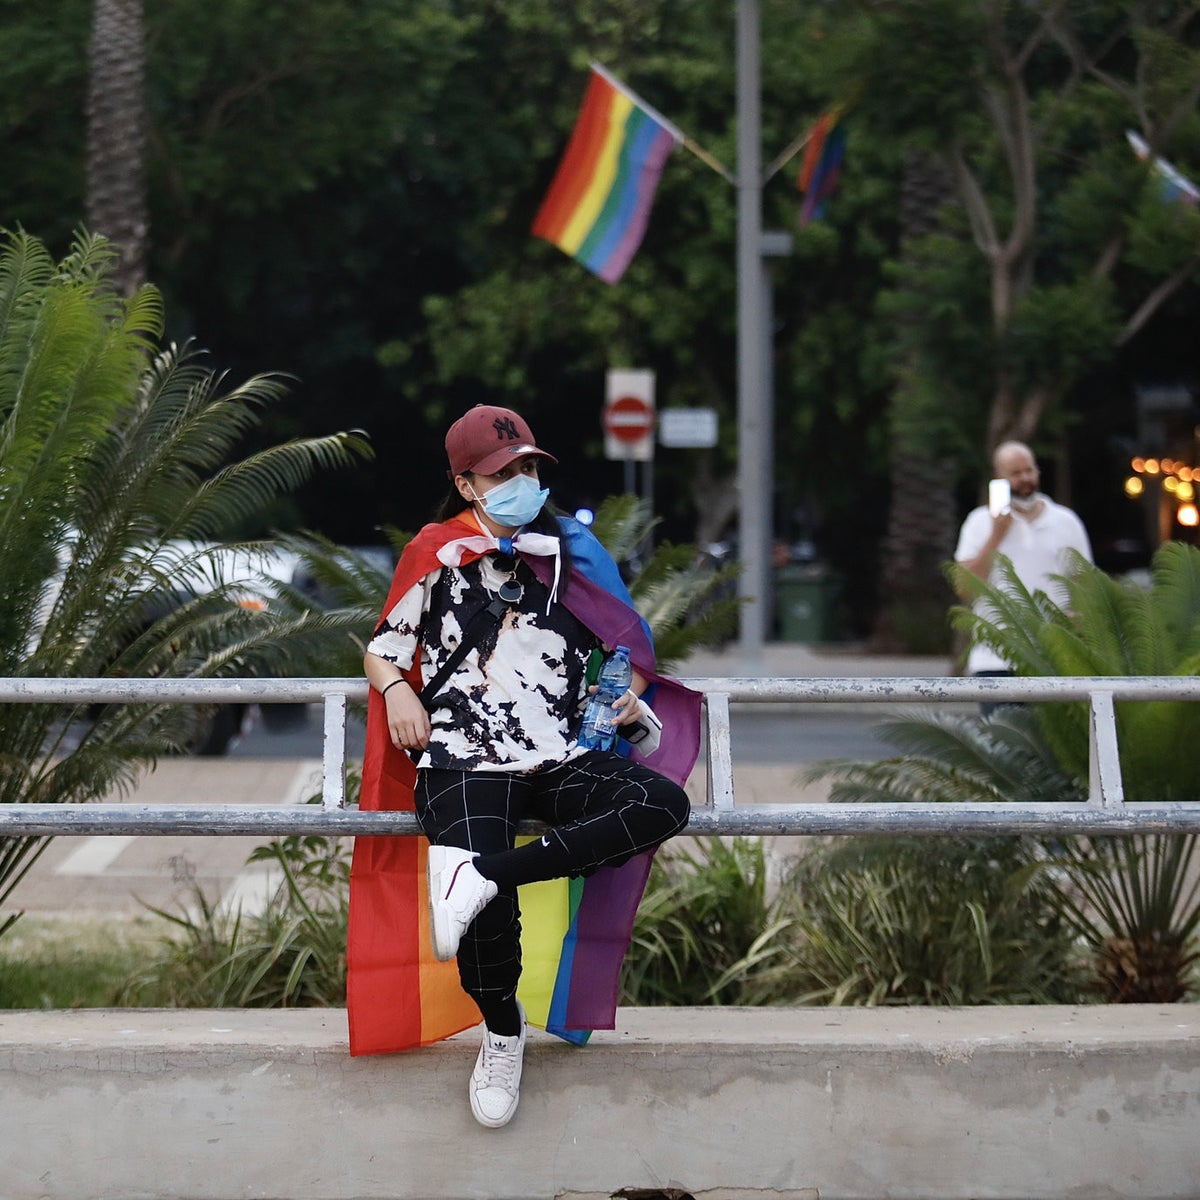 A demonstrator at the Pride rally in Tel Aviv, June 28, 2020.